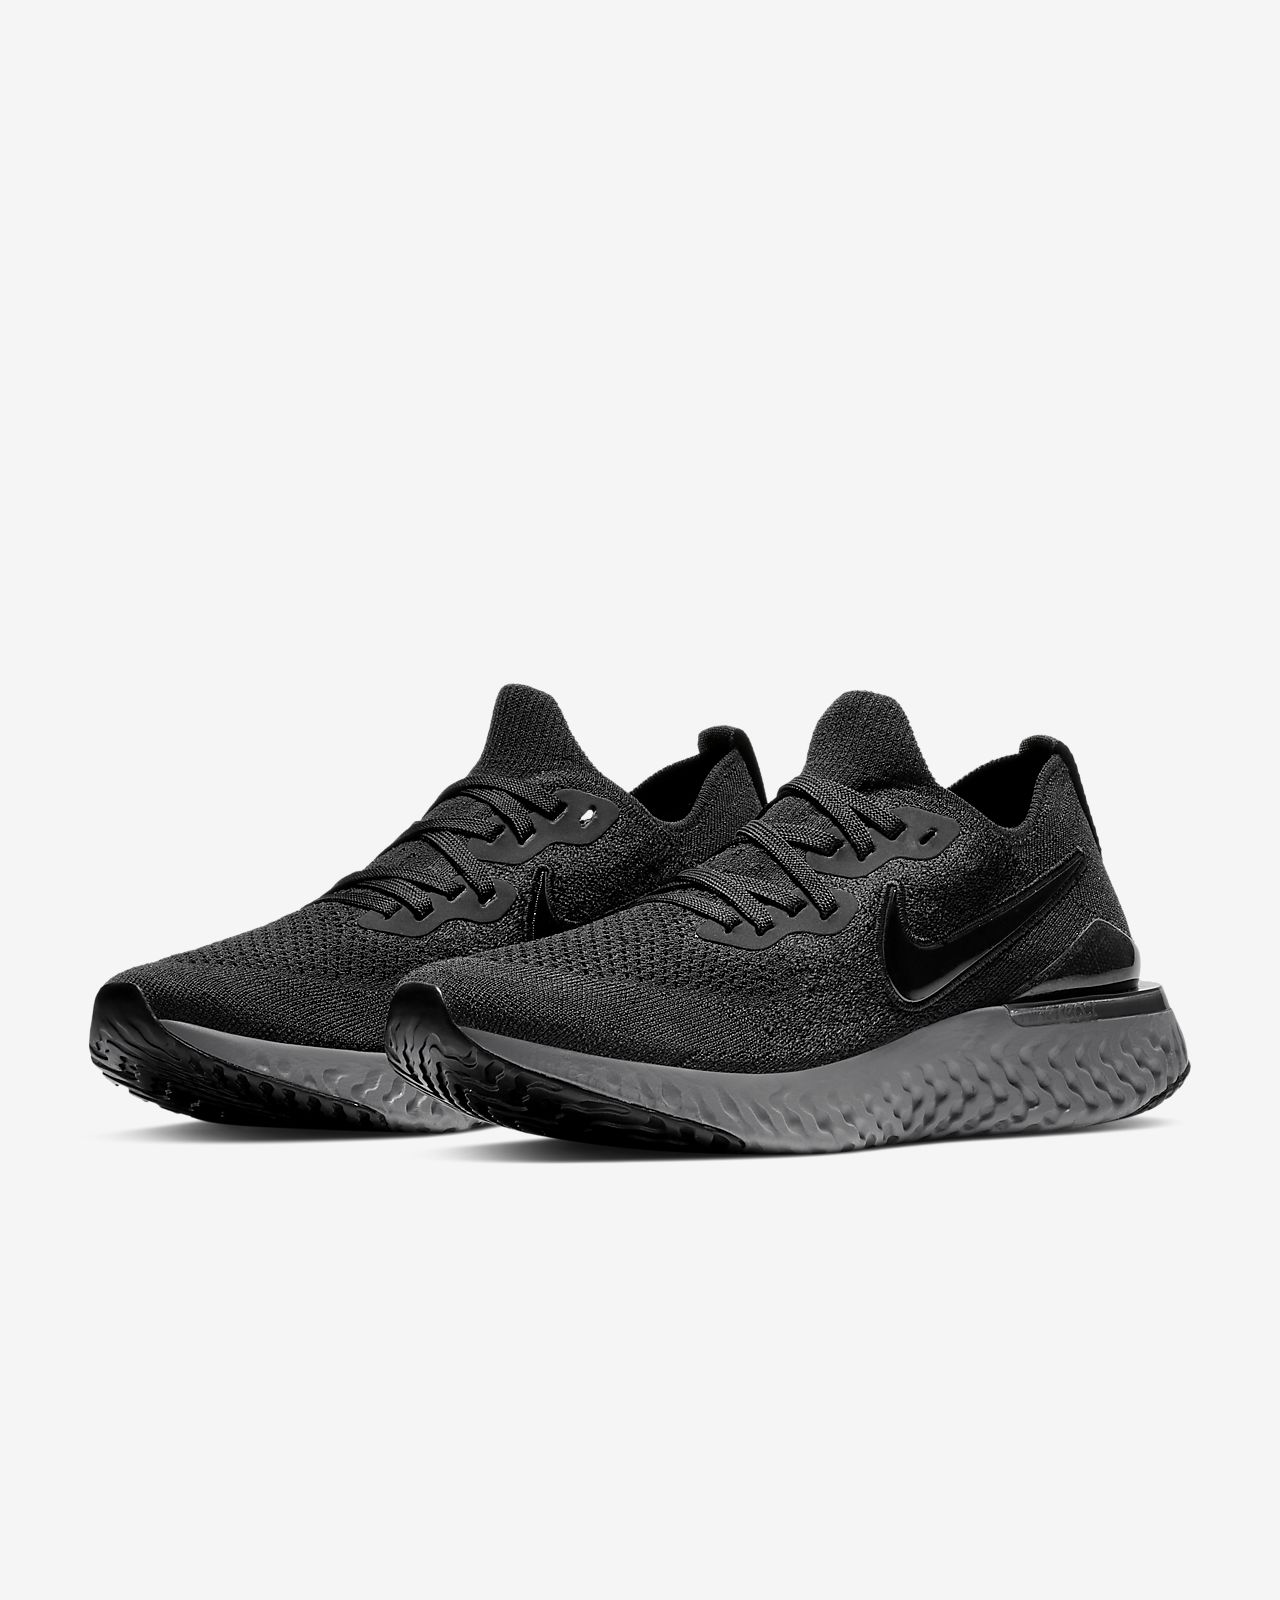 2nike running epic react flyknit 2